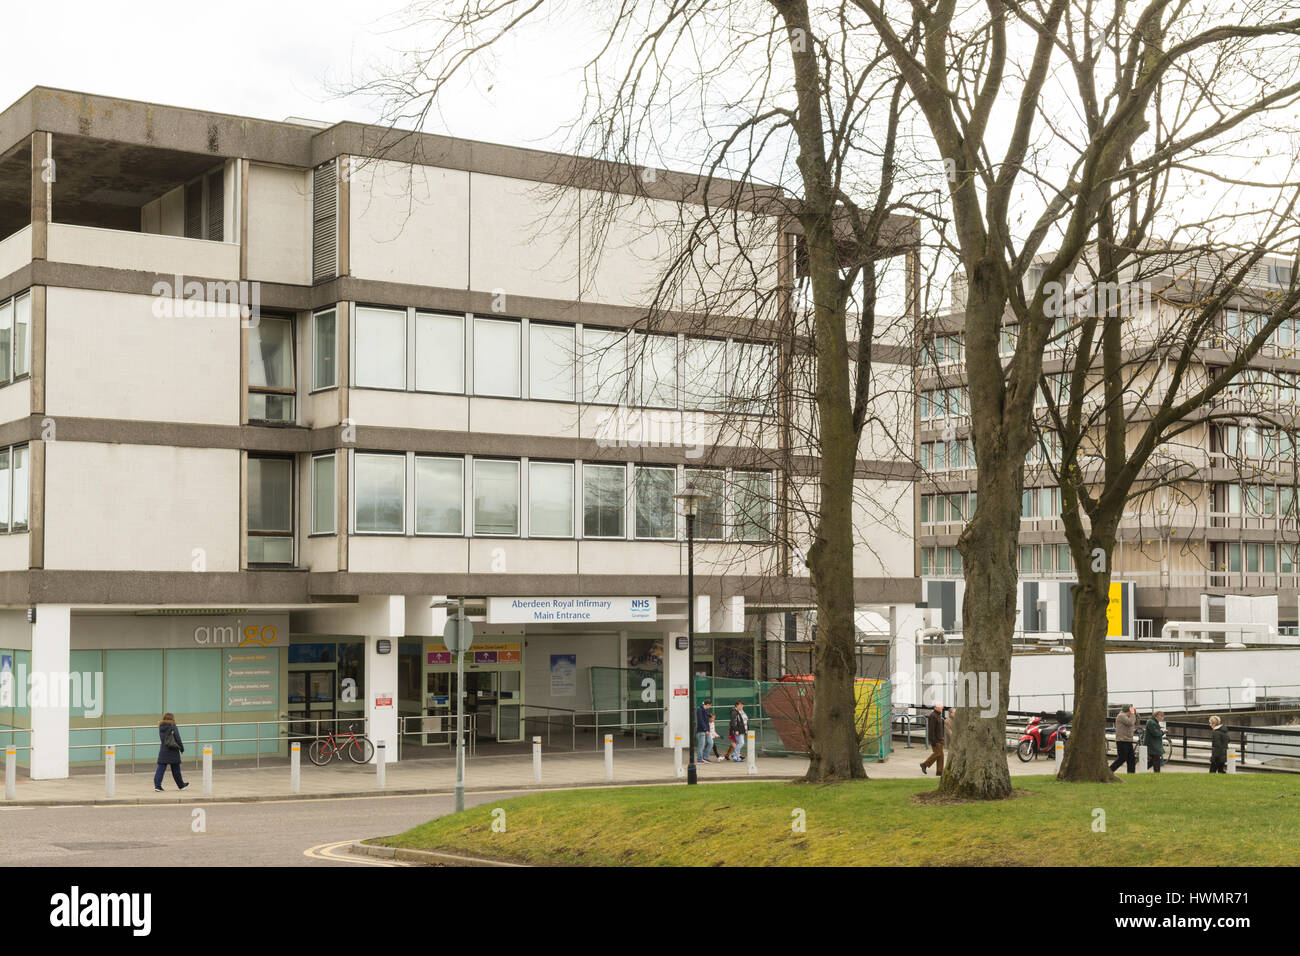 Aberdeen Royal Infirmary Main Entrance, NHS Grampion, Aberdeen, Scotland, UK - Stock Image